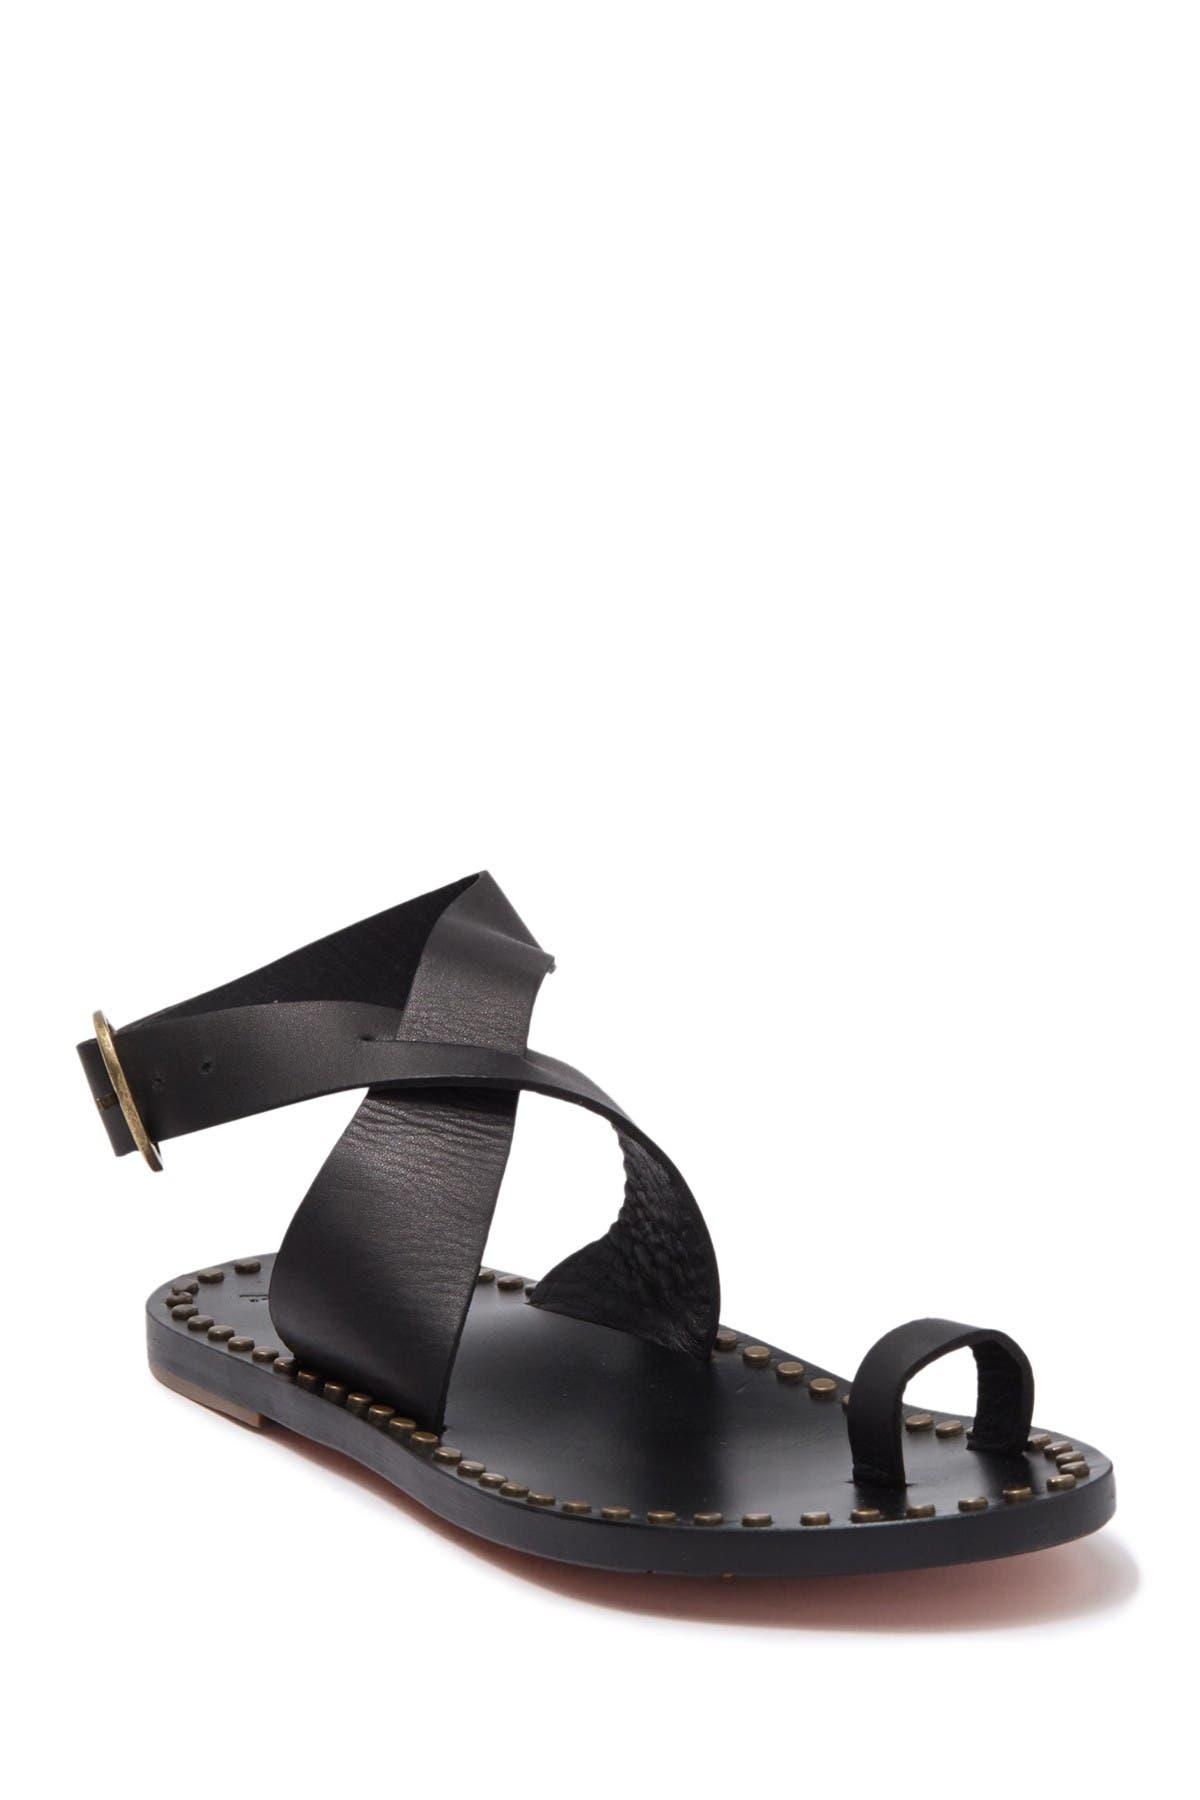 Image of BEEK Crossed Ankle Strap Toe Loop Sandal